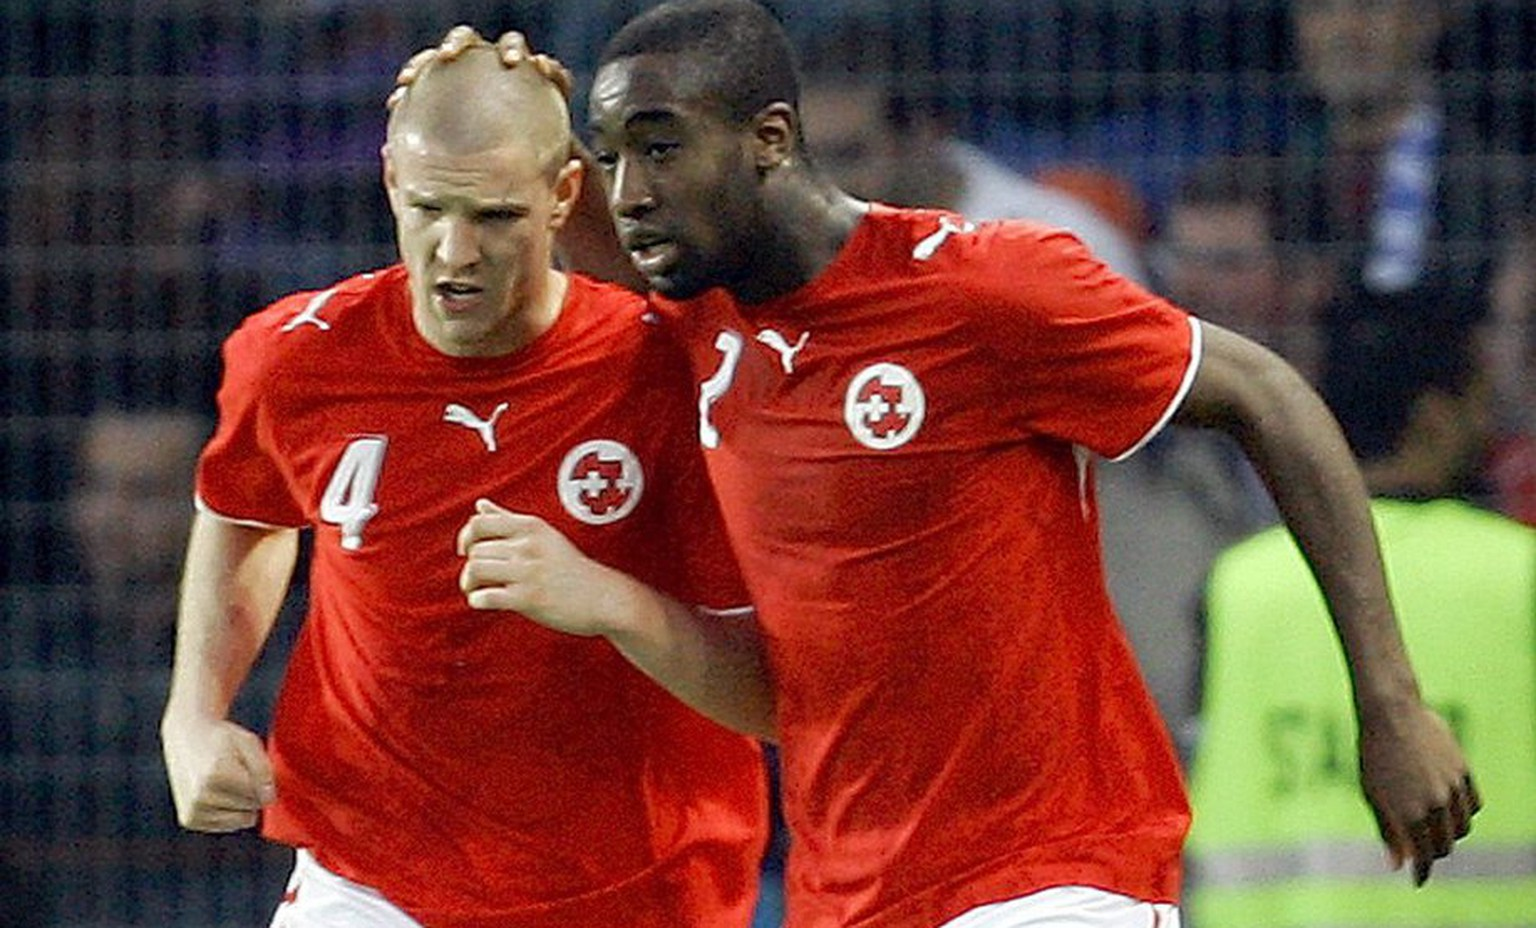 Switzerland's Philippe Senderos, left, celebrates with Johan Djourou, right, Italy's after Switzerland scored during a friendly soccer match in preparation for the upcoming Soccer World Cup between Italy and Switzerland at the Stade de Geneve, in Geneva, Switzerland, Wednesday, May 31, 2006. Italy will play in Group E against Ghana,USA and Czech Republic. Switzerland will play in group G with France, Republic of Korea and Togo. (KEYSTONE/AP Photo/Anja Niedringhaus)